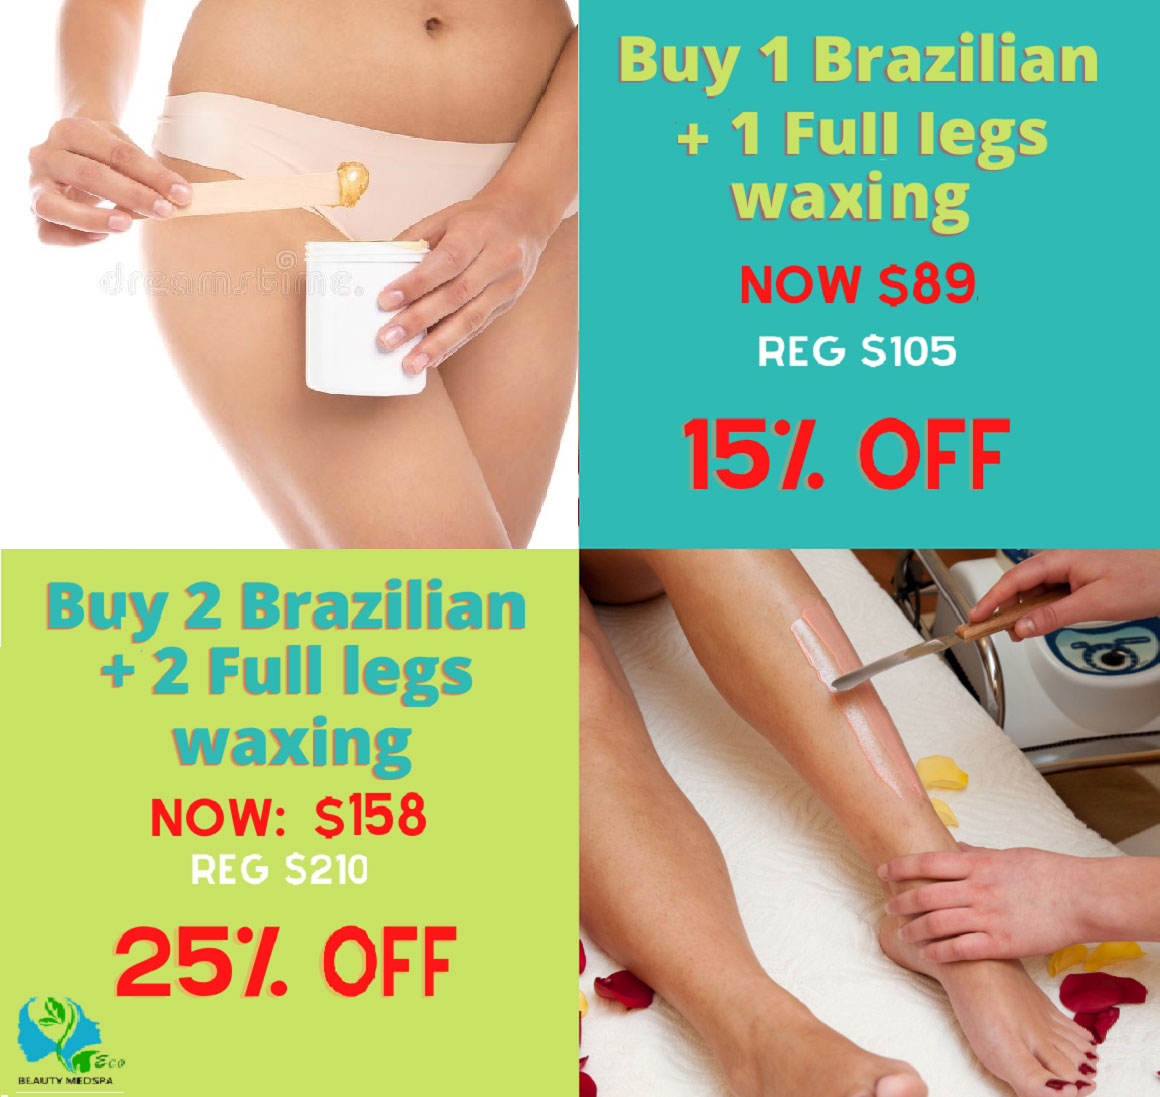 Special offers for Women Waxing